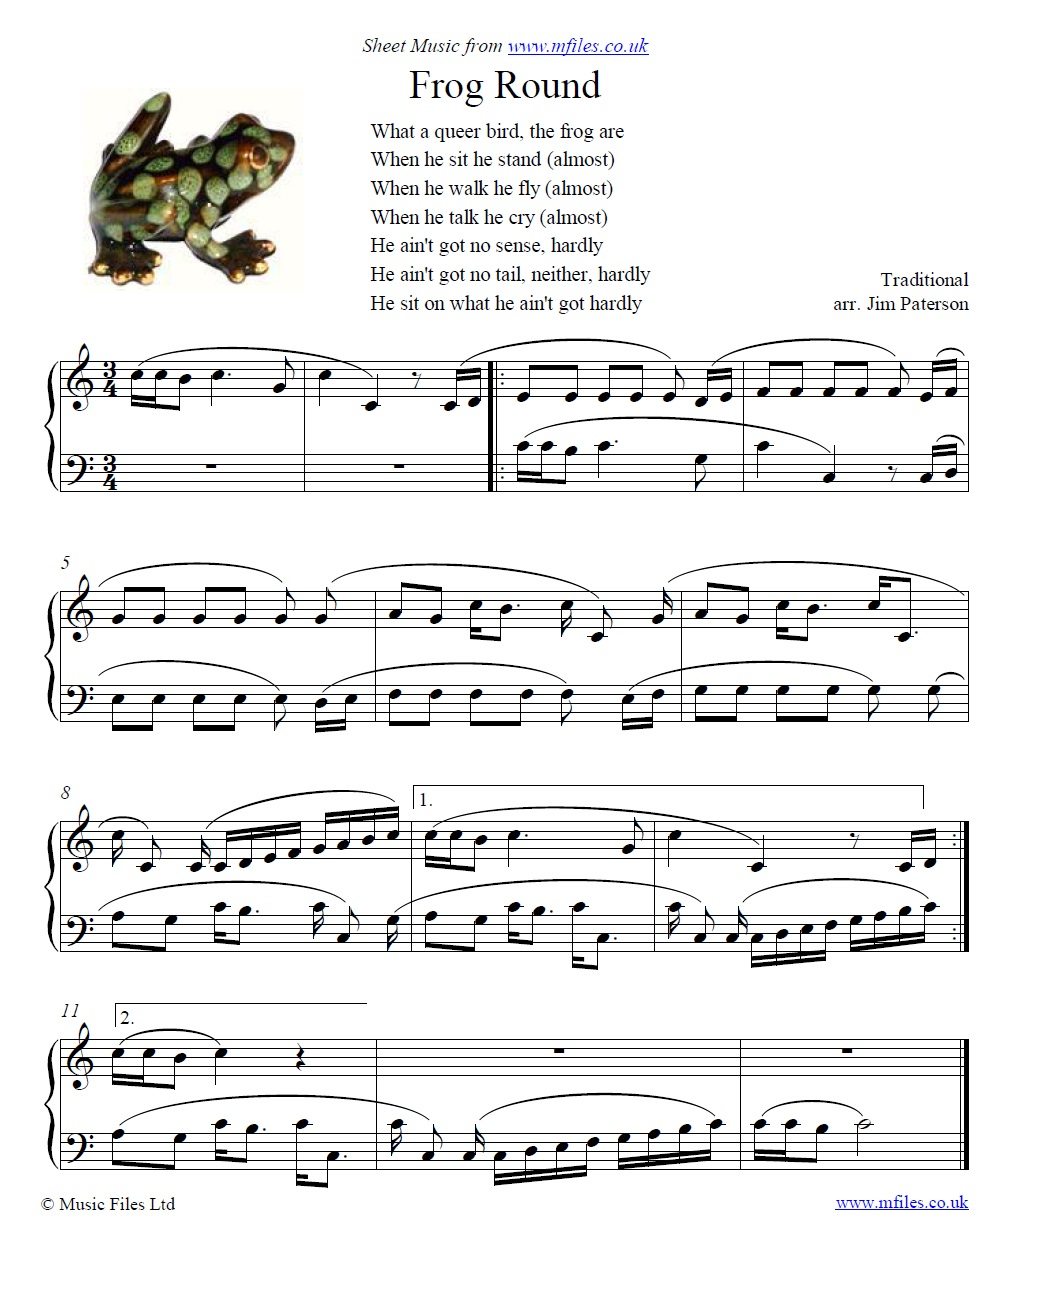 The Frog Round - sheet music 1st page